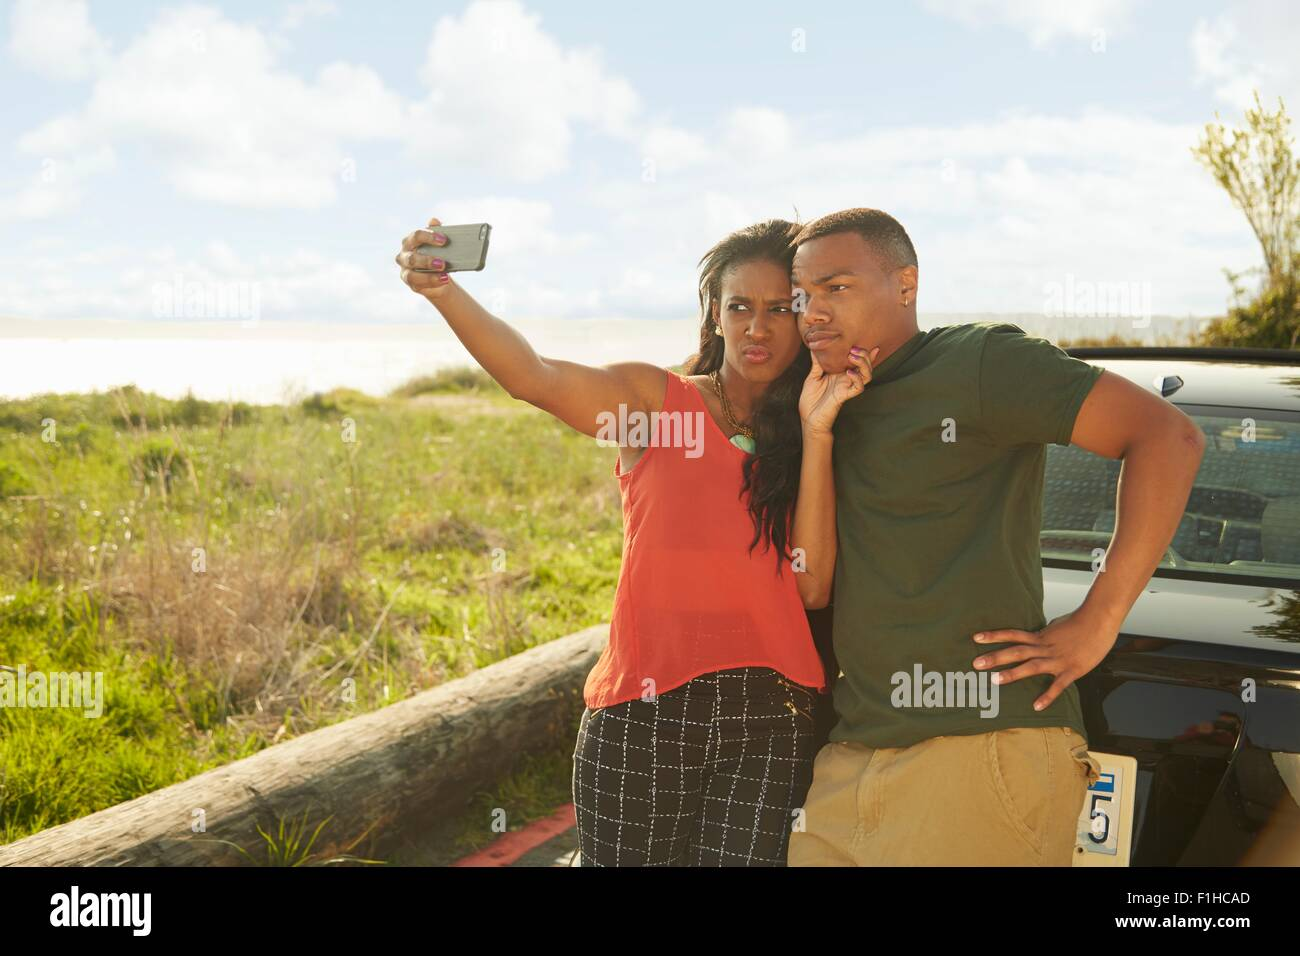 Jeune couple using smartphone, en tenant, selfies making faces Photo Stock